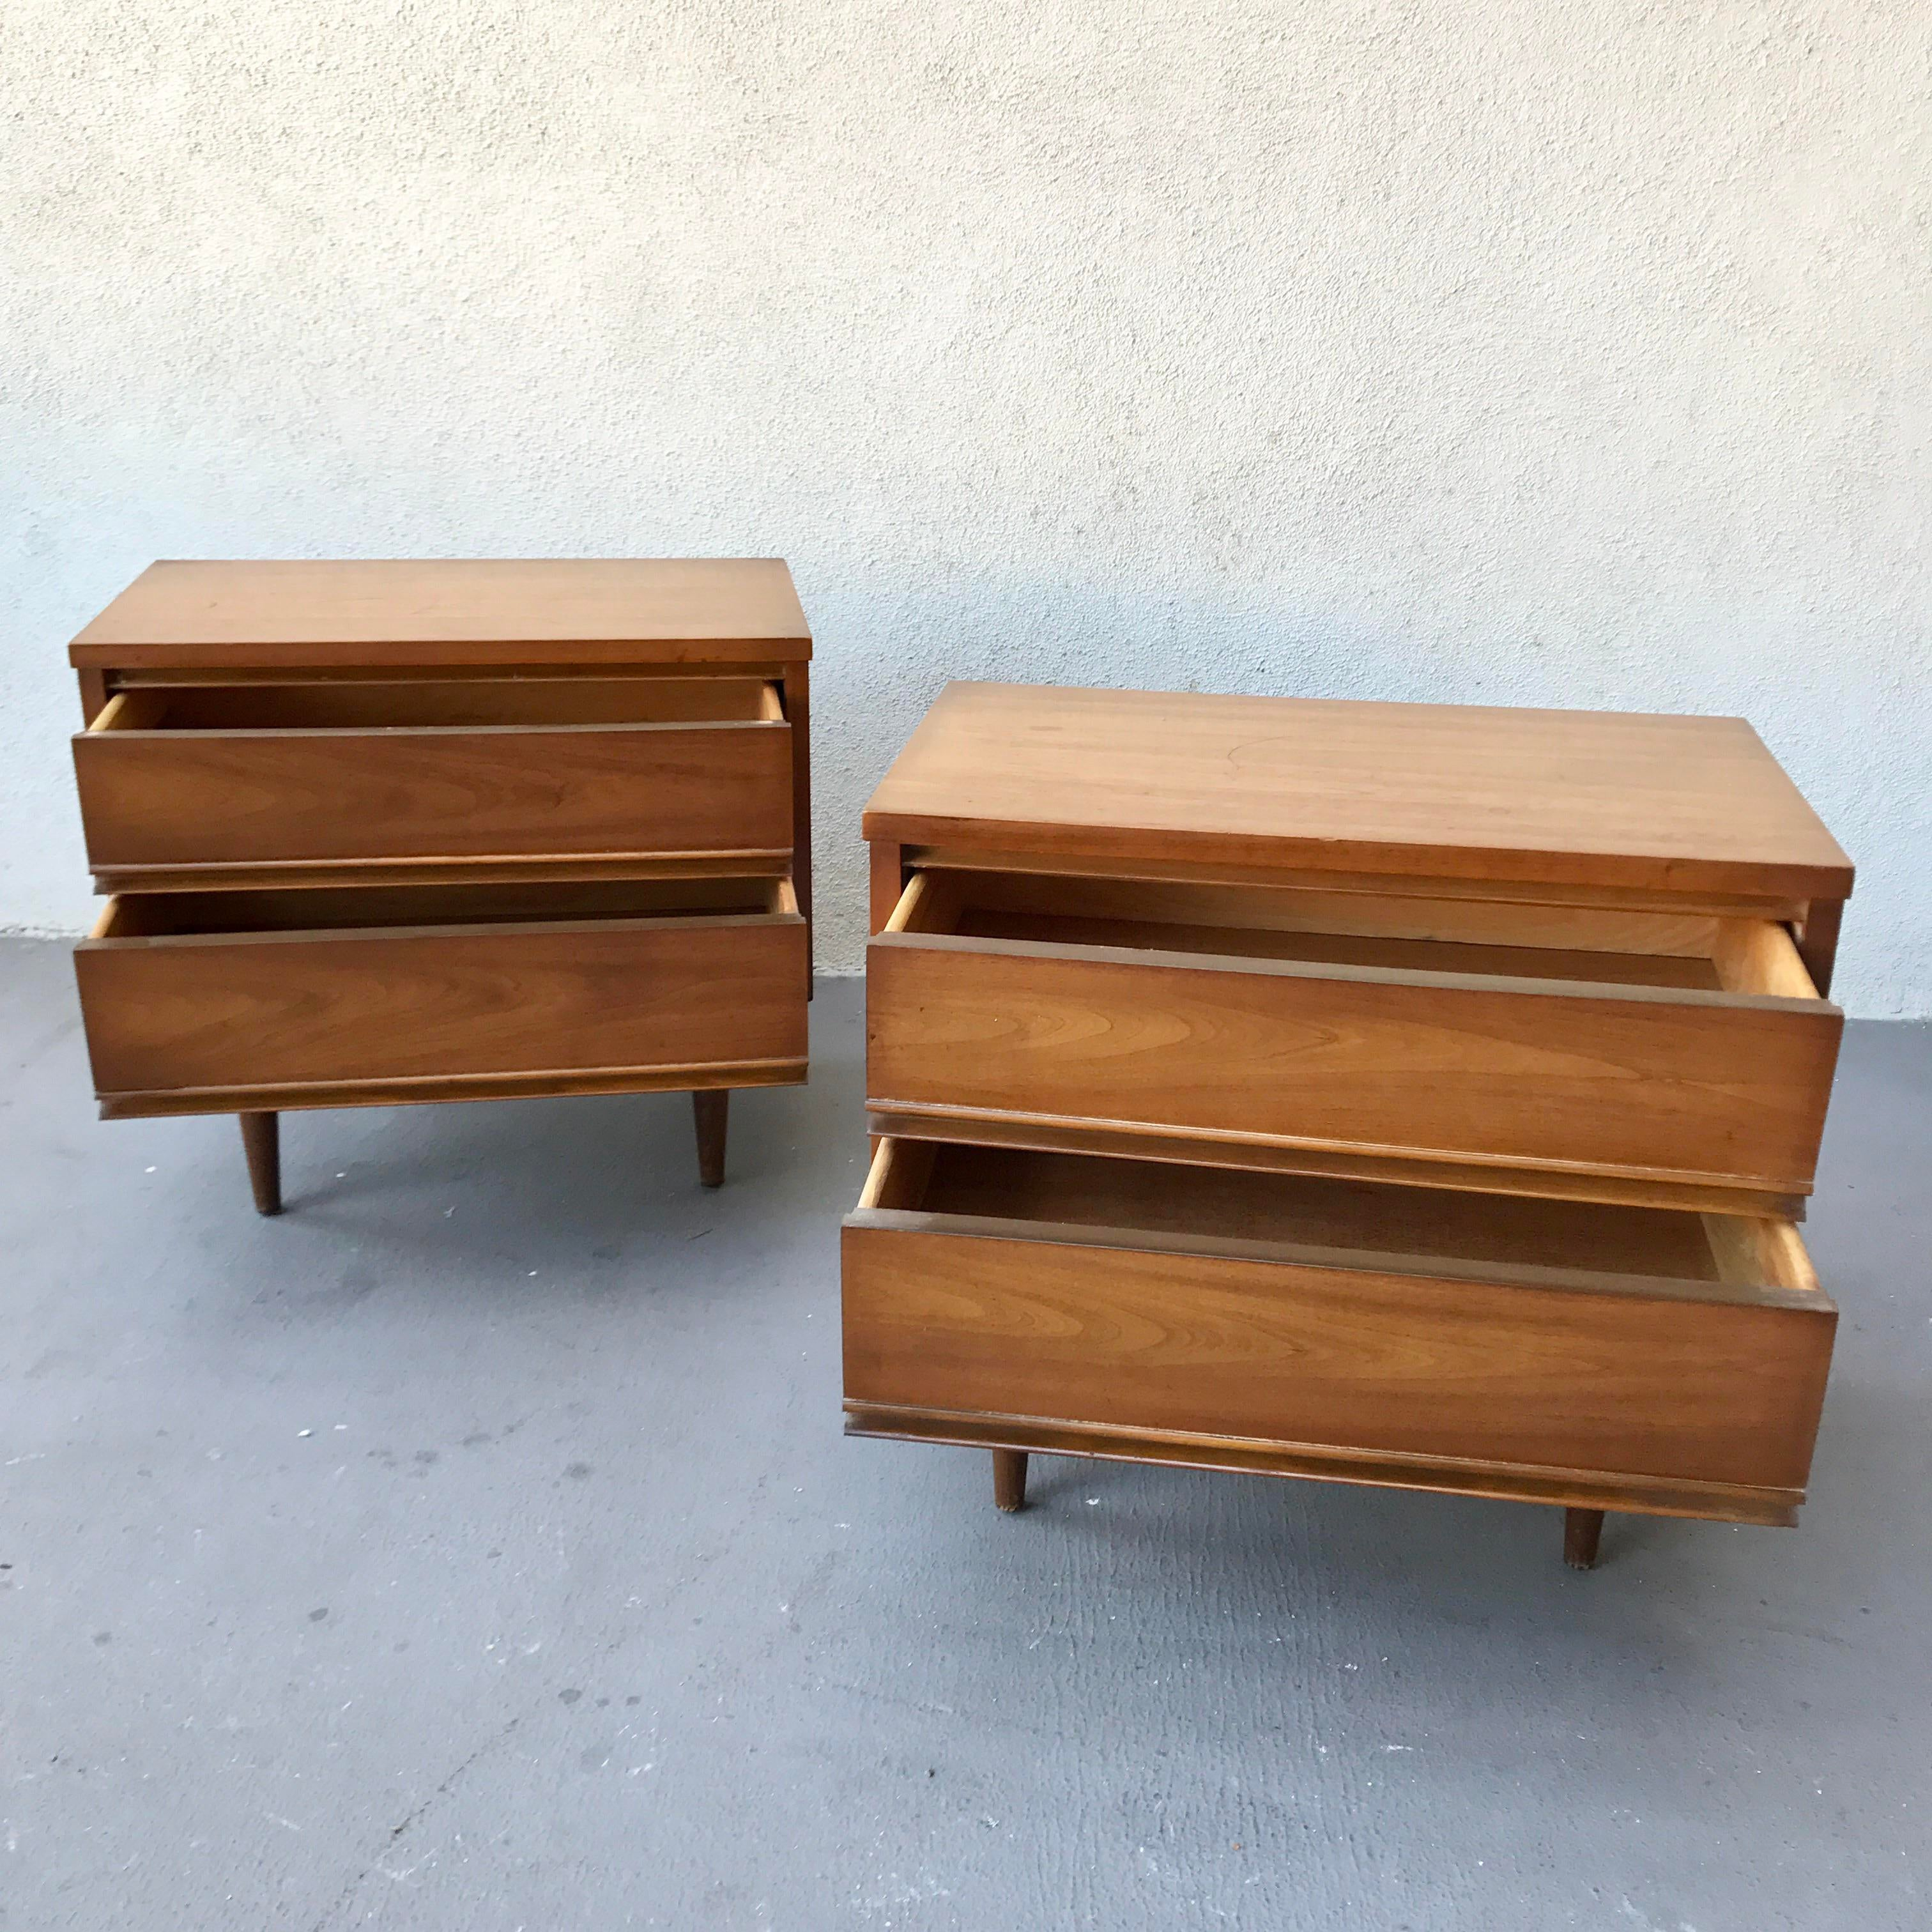 mid century modern bedside table. Mid-Century Modern Harmony House Bedside Tables - A Pair For Mid Century Table ,